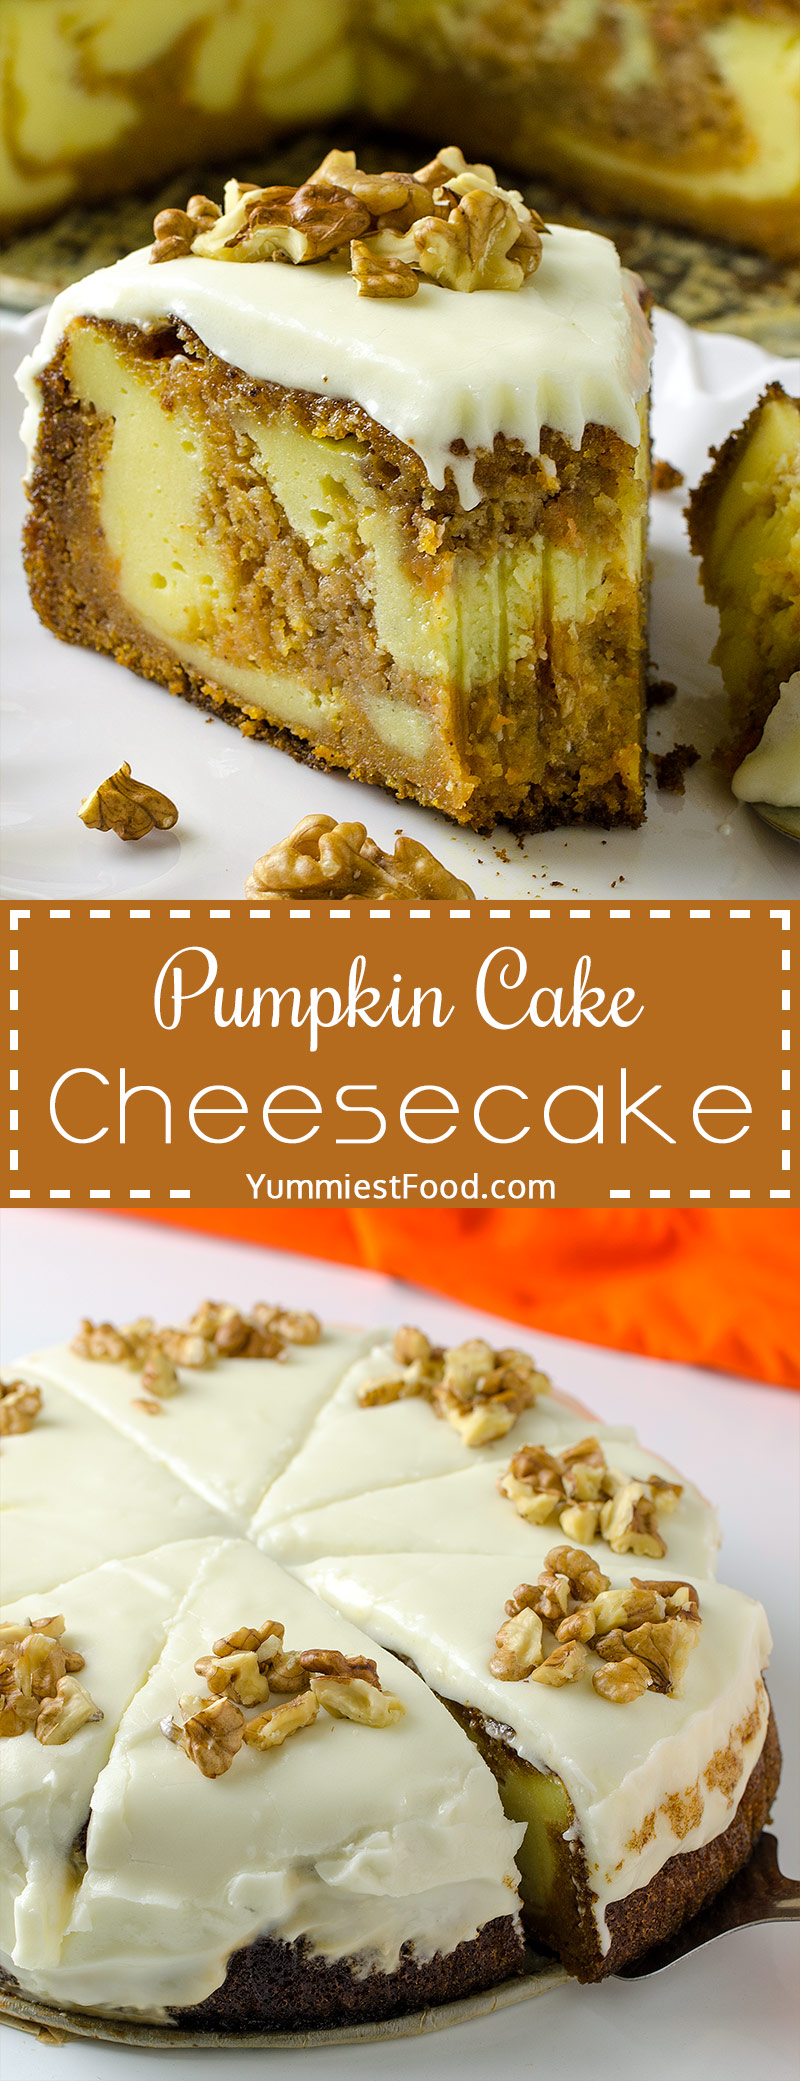 PUMPKIN CAKE CHEESECAKE - No Thanksgiving table is complete without pumpkin cake cheesecake. This perfect recipe is soft, moist, delicious and so very good. The perfect dessert for your Thanksgiving dinner party.